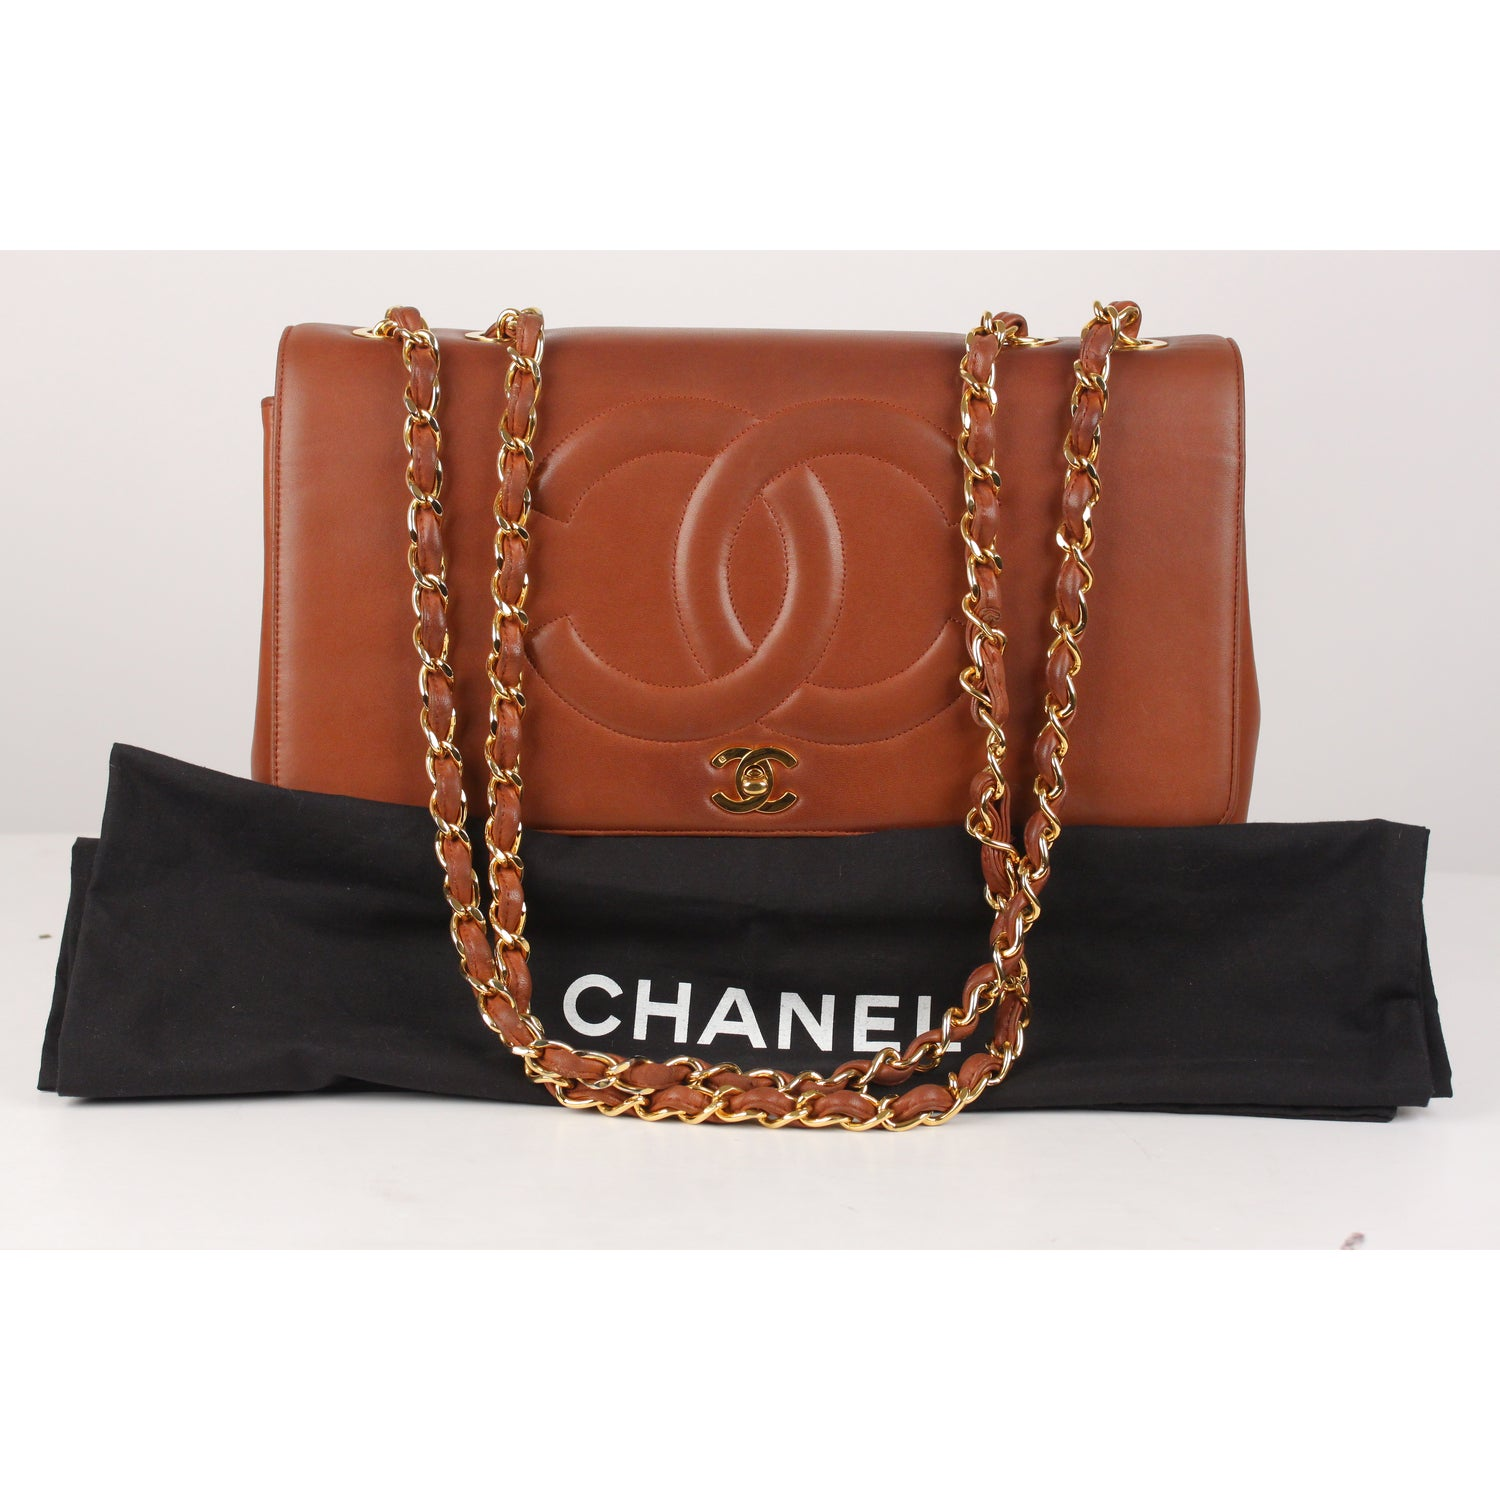 25ff6f39ff2a Chanel Vintage Brown Quilted Leather Jumbo Shoulder Bag with CC Logo For  Sale at 1stdibs